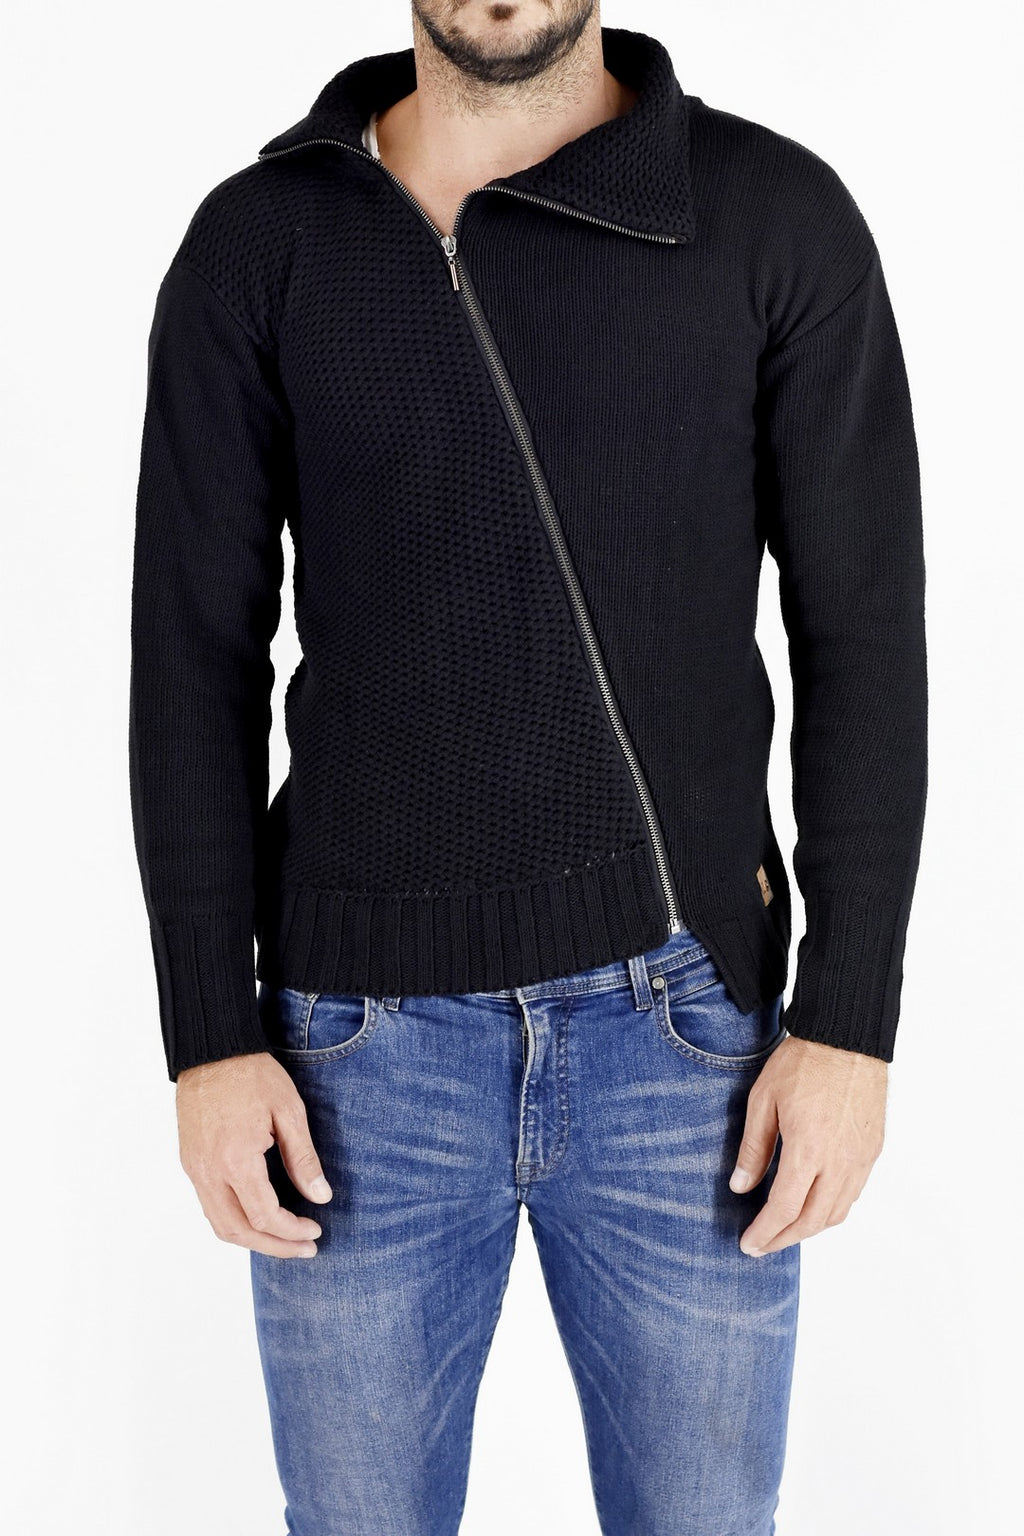 Mens Knitwear Black Asymmetric Zip Sweater ZG5196